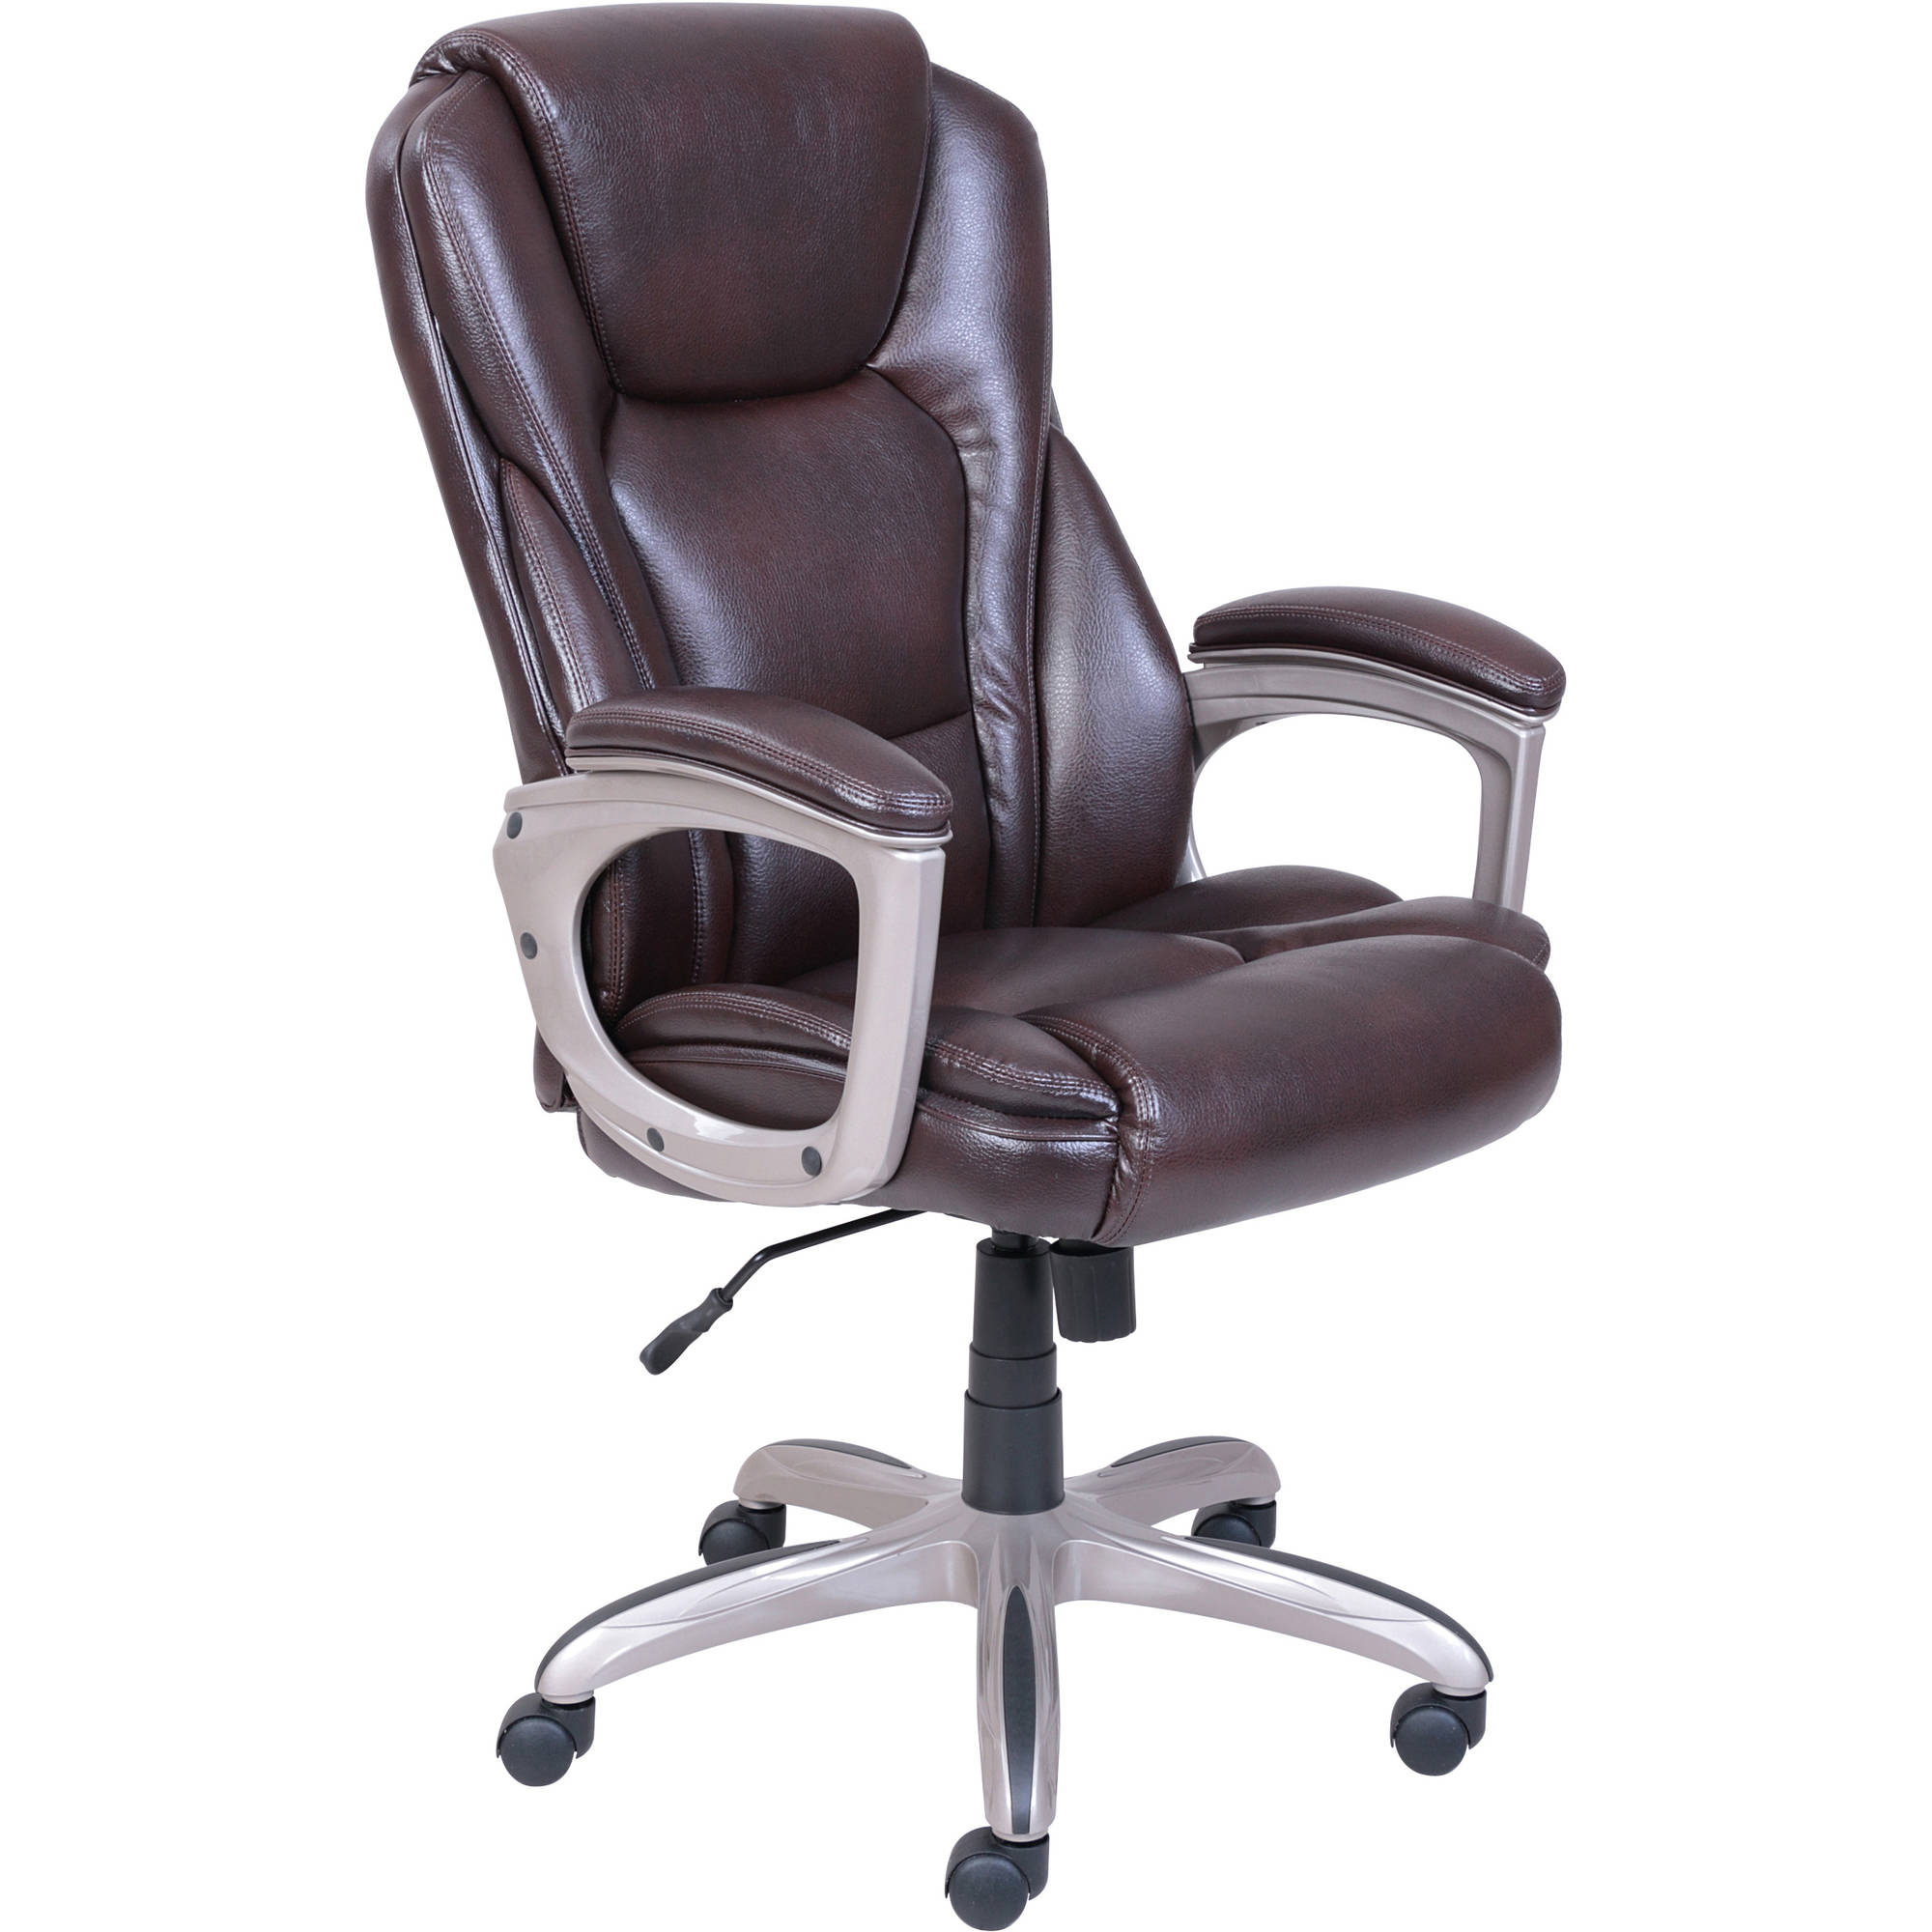 Modern leather office chair - Serta Big Tall Commercial Office Chair With Memory Foam Multiple Colors Walmart Com